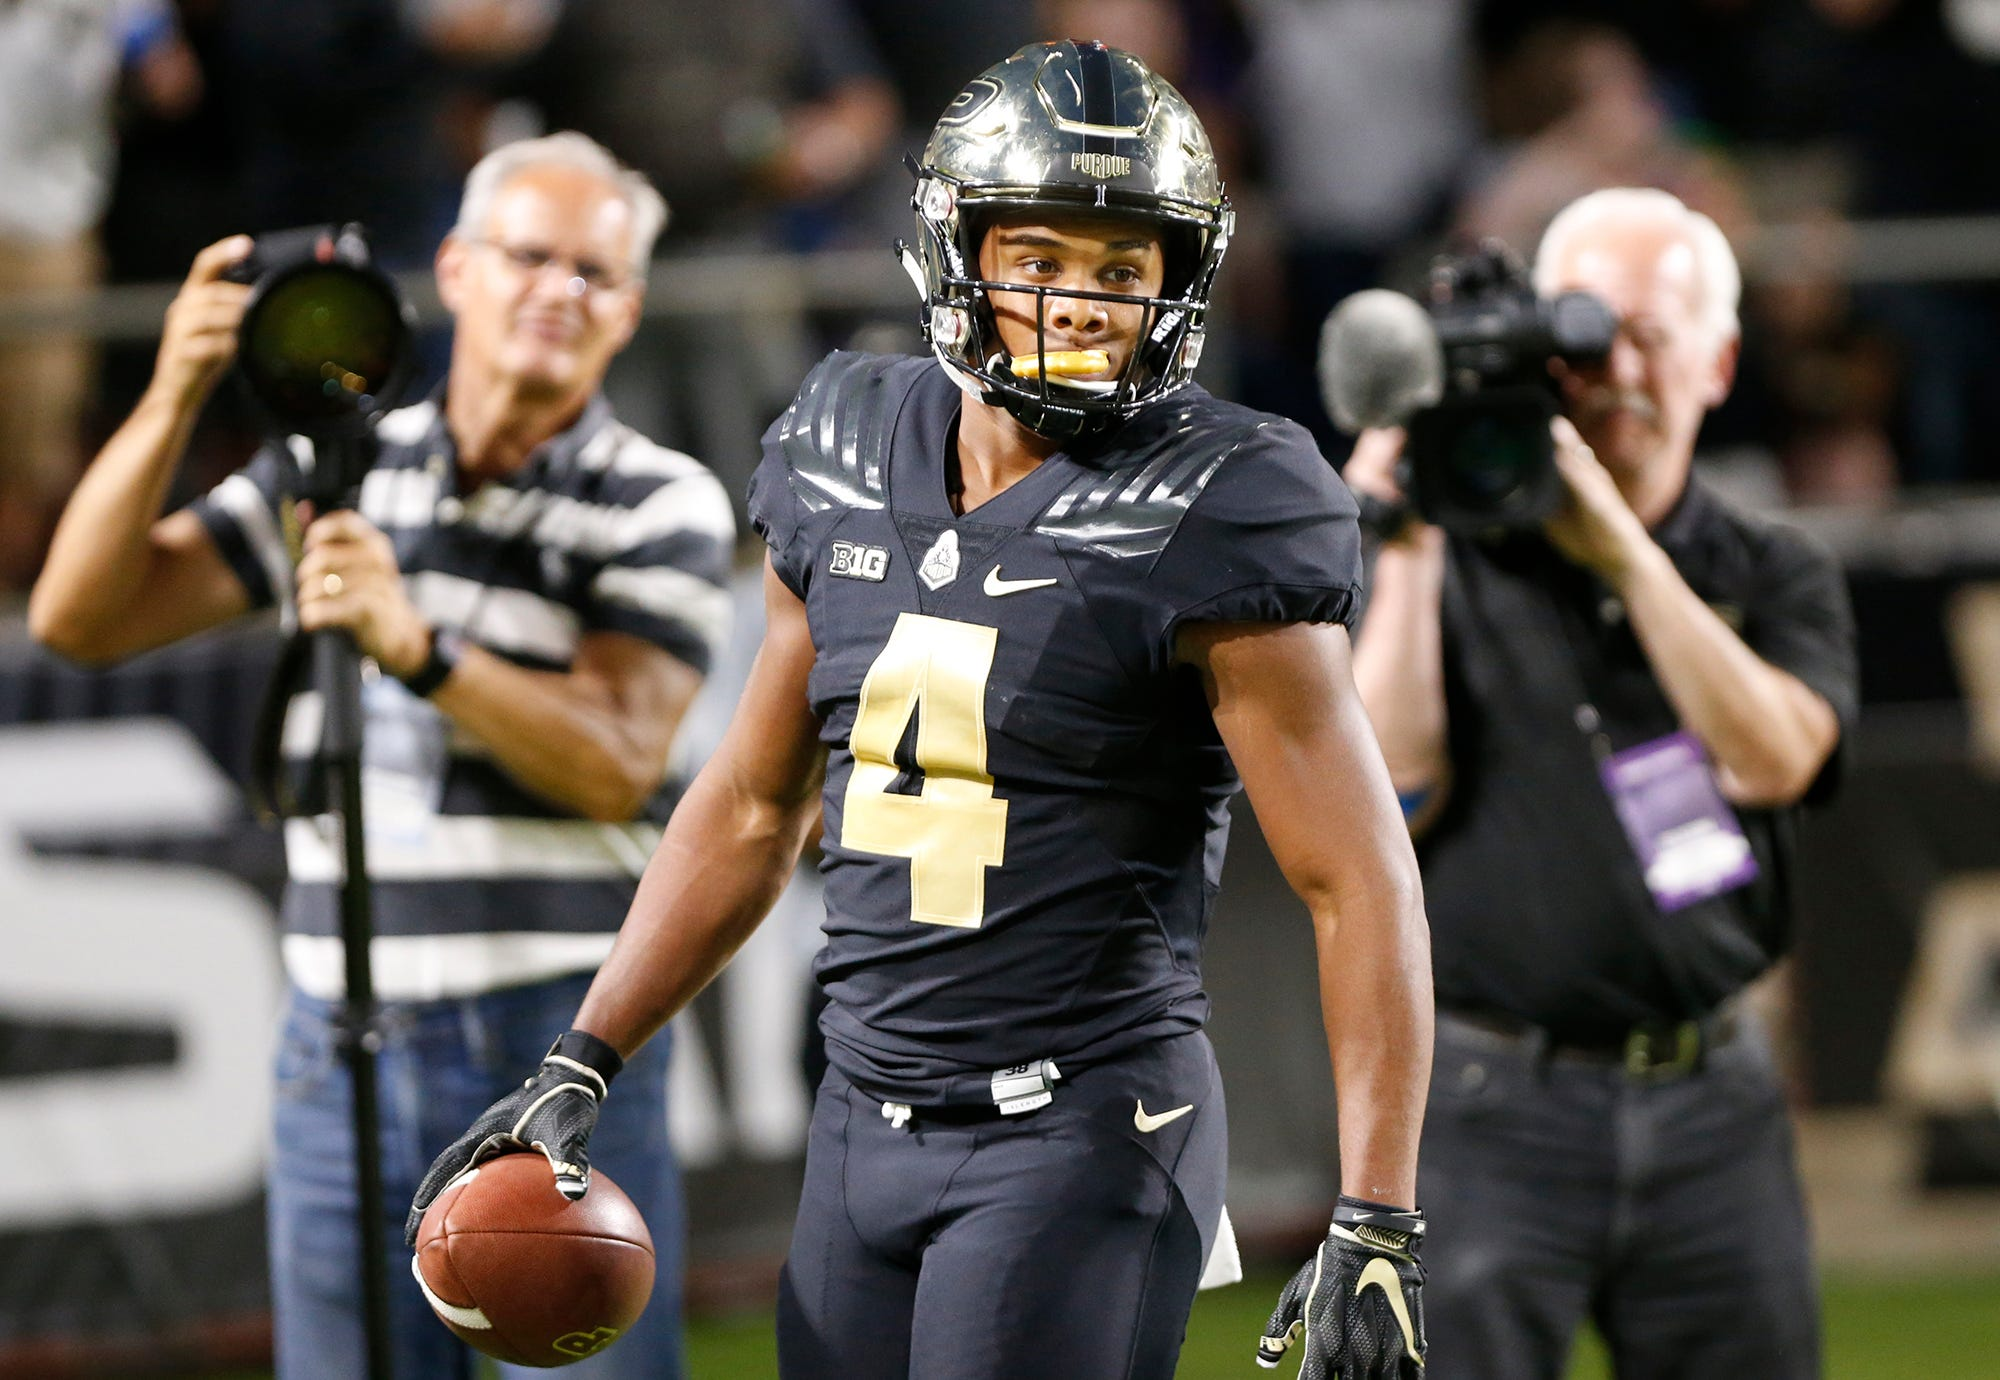 Rondale Moore looks to the Purdue bench after at 76-yard touchdown run at 1:02 against Northwestern Thursday, August 30, 2018, in West Lafayette. Moore's score tied the game at 14-14.